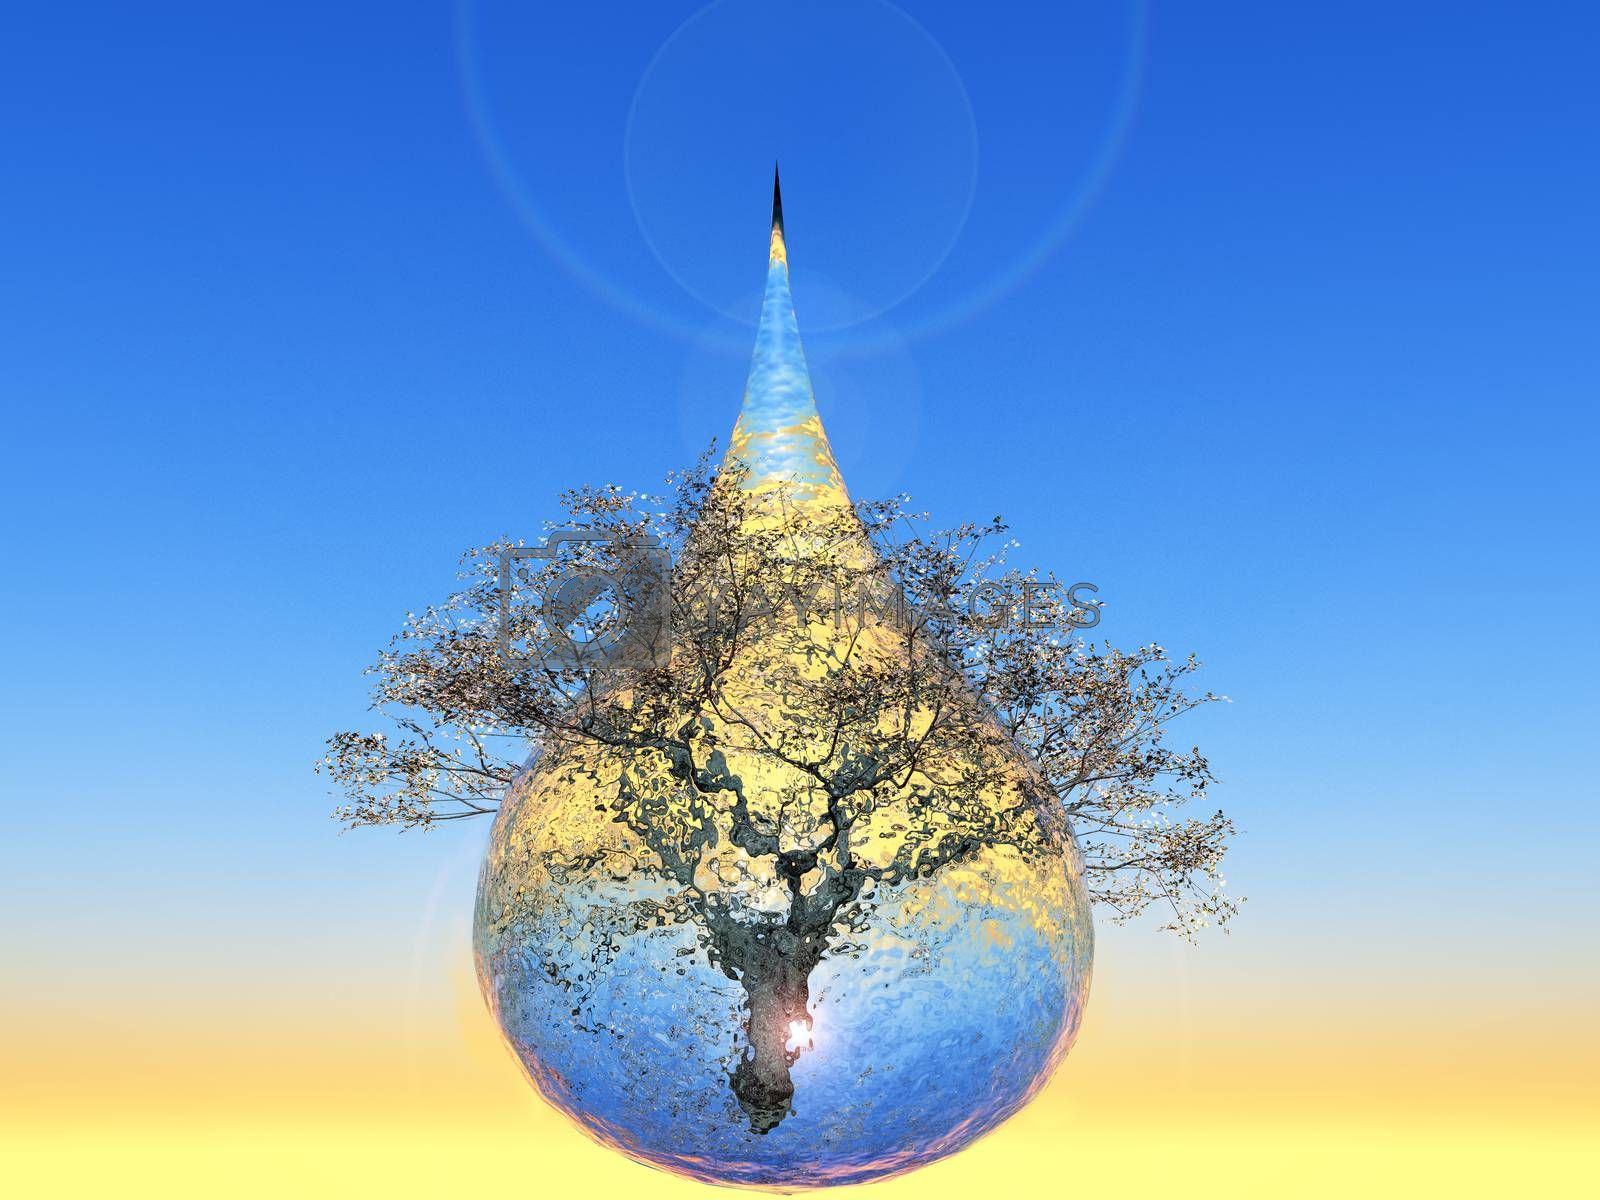 a tree inside a water drop